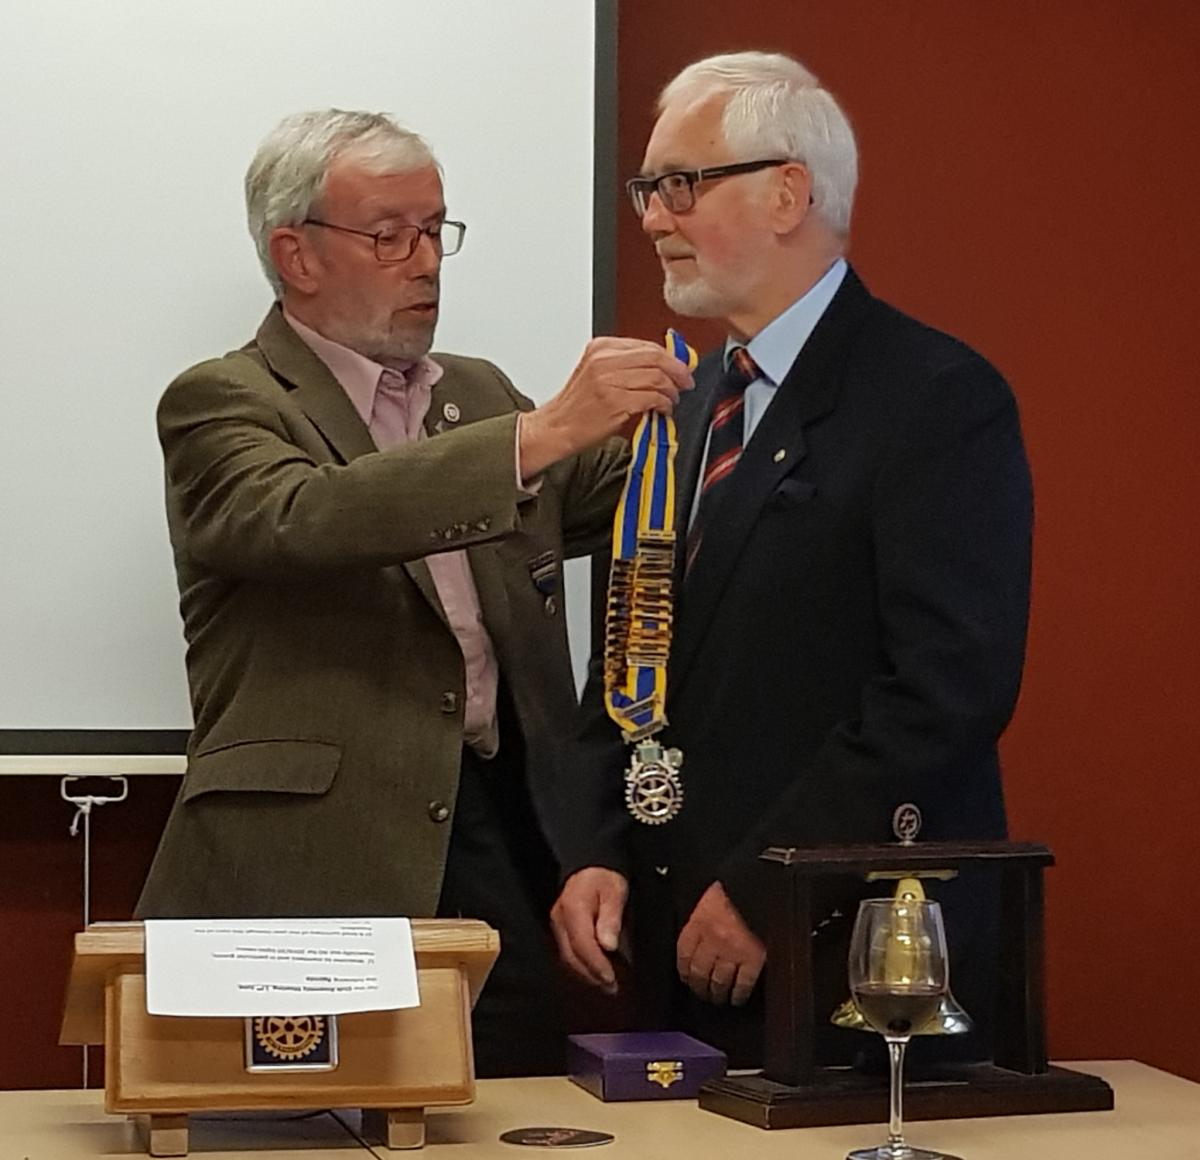 New President and President Elect installed for 2019/20 - 20190618 091626